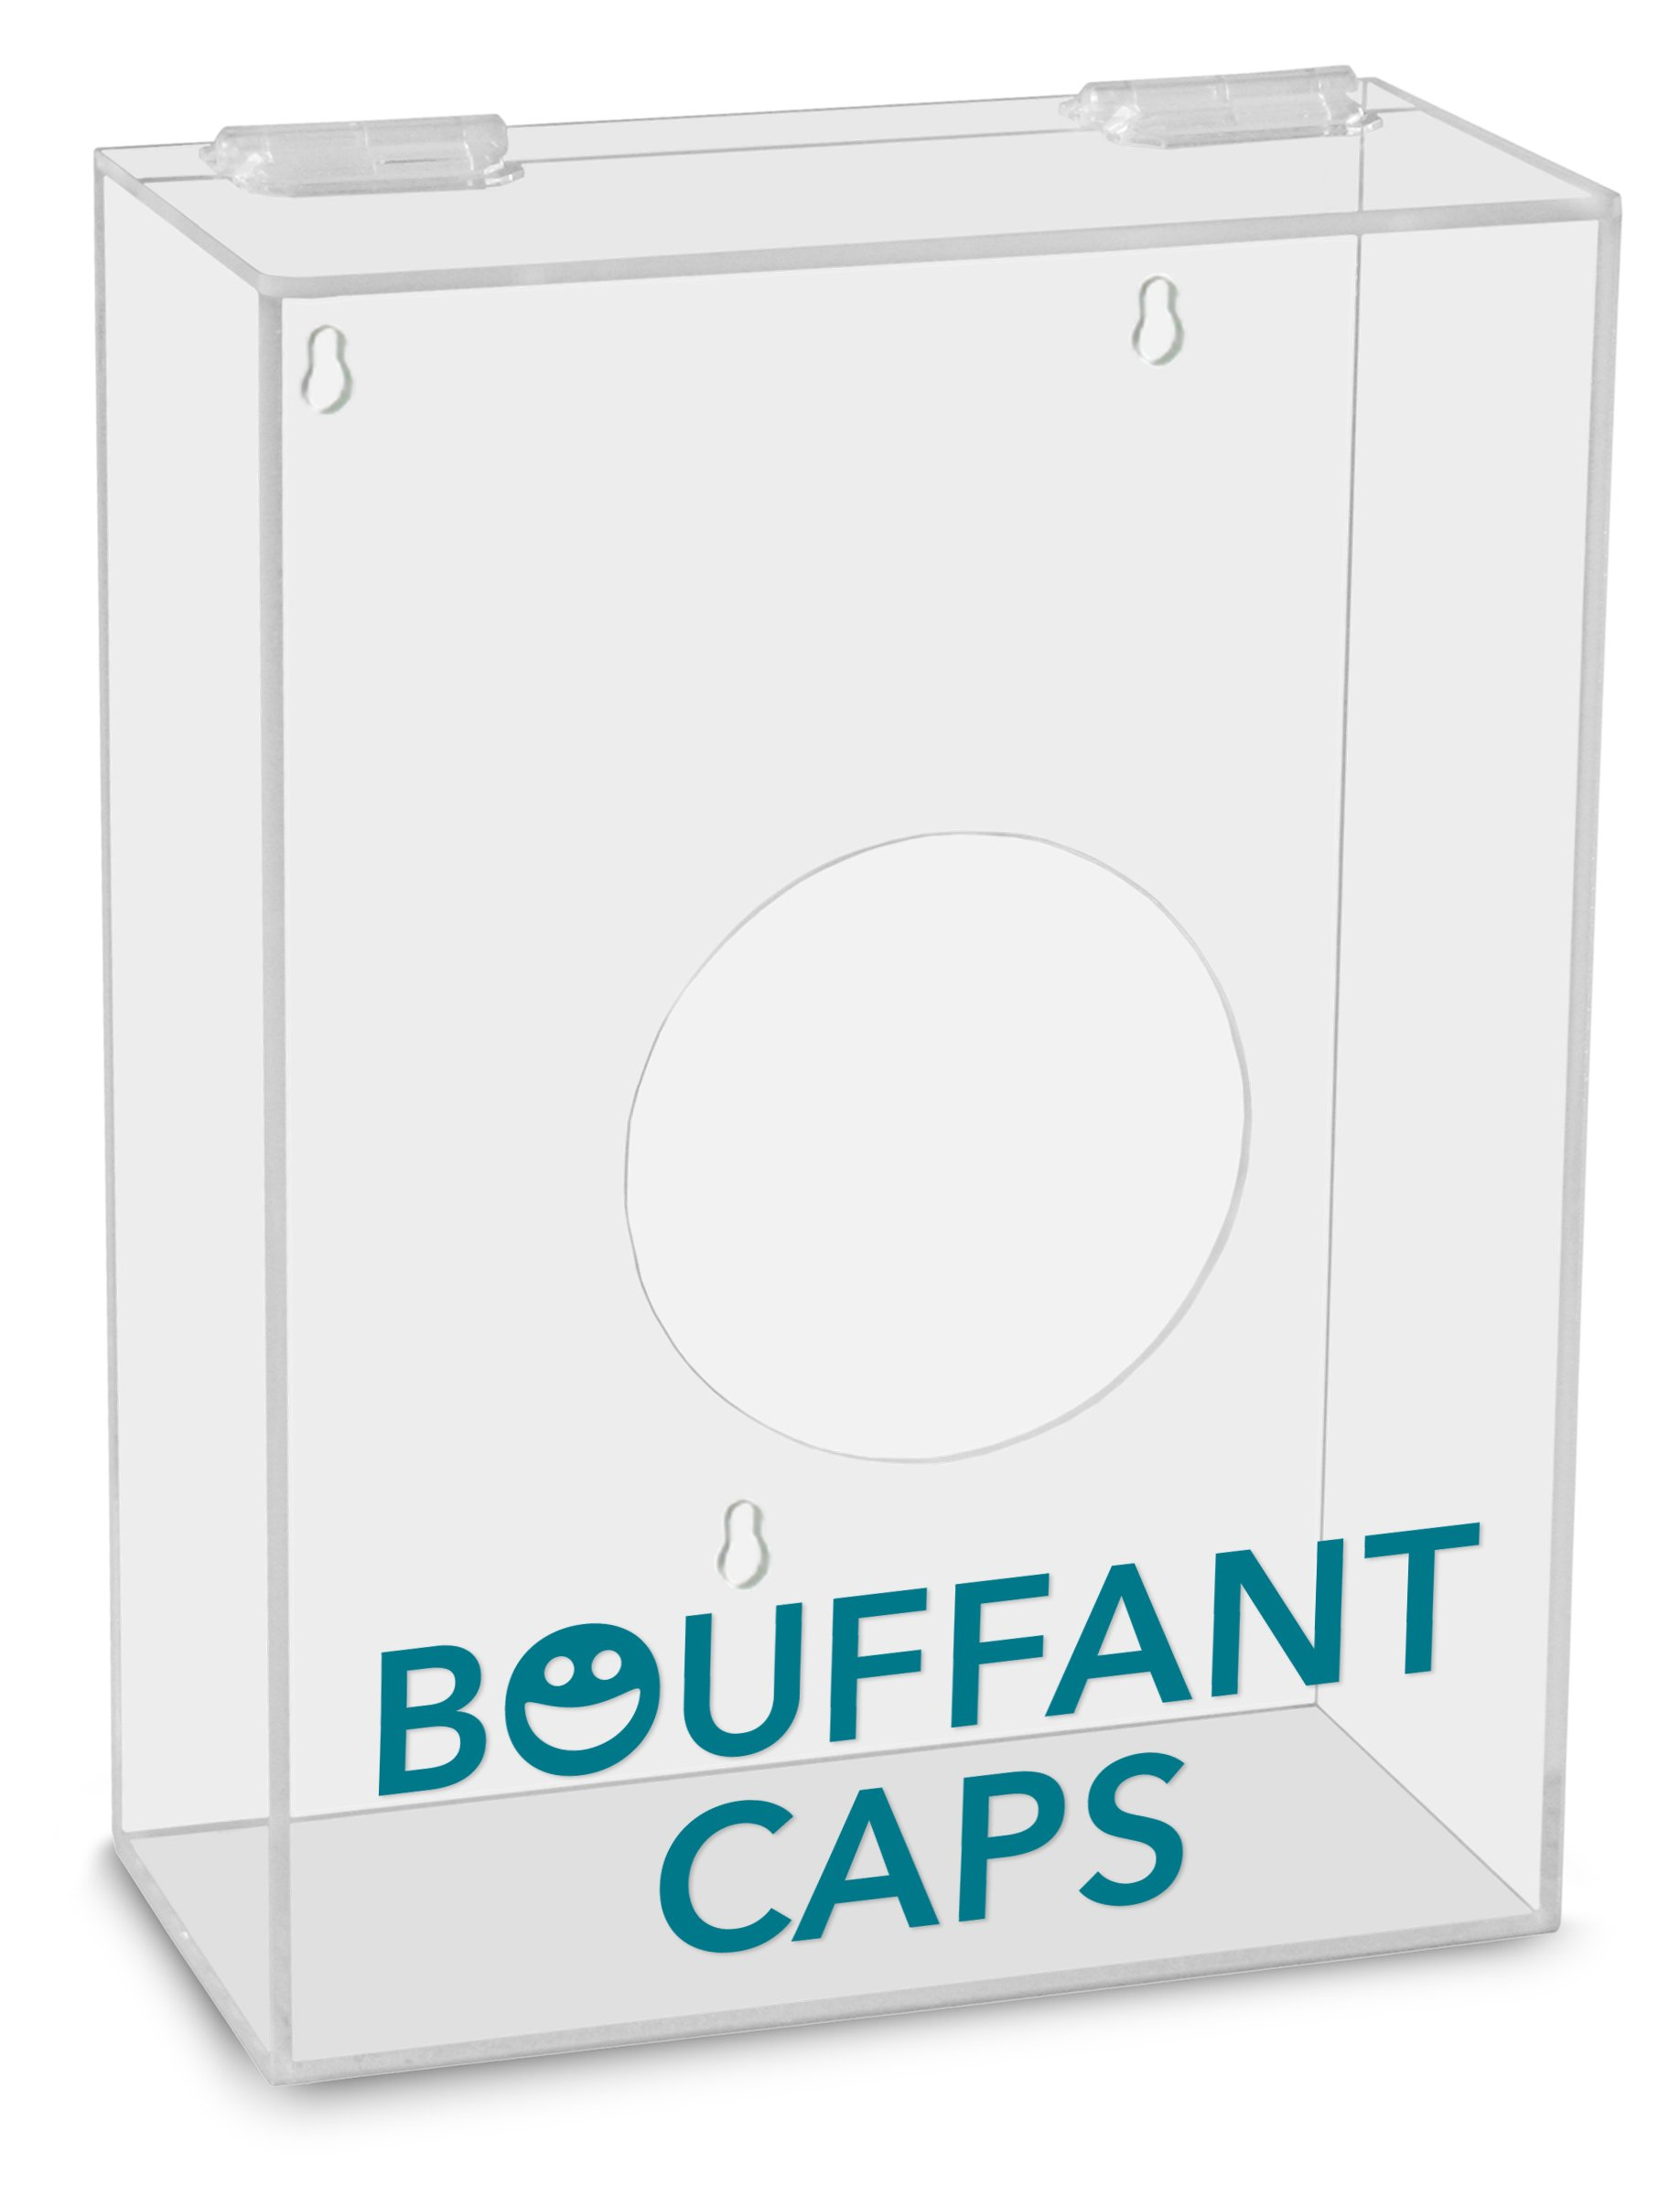 TrippNT 51312 Bouffant Caps Labeled Small Apparel Dispenser, 9'' Width x 12'' Height x 4'' Depth